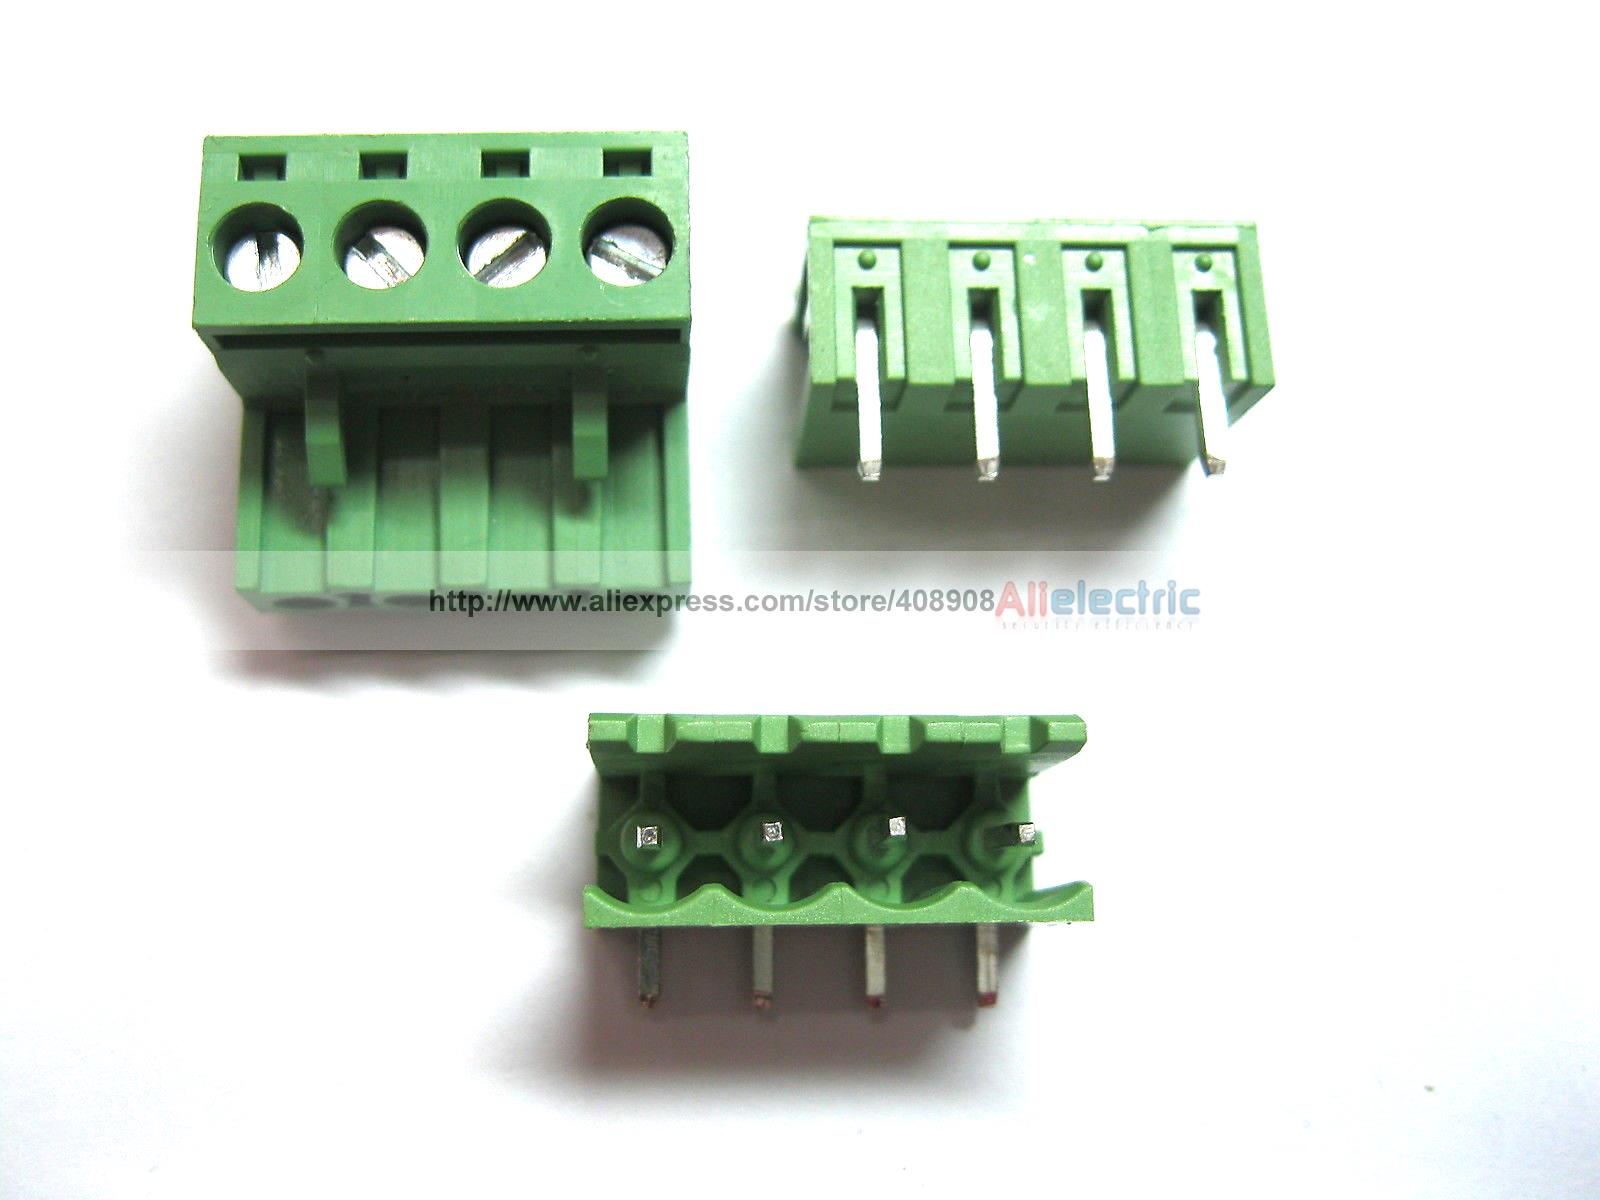 цена на 50 Pcs 5.08mm Angle 4 Pin Screw Terminal Block Connector Pluggable Type Green